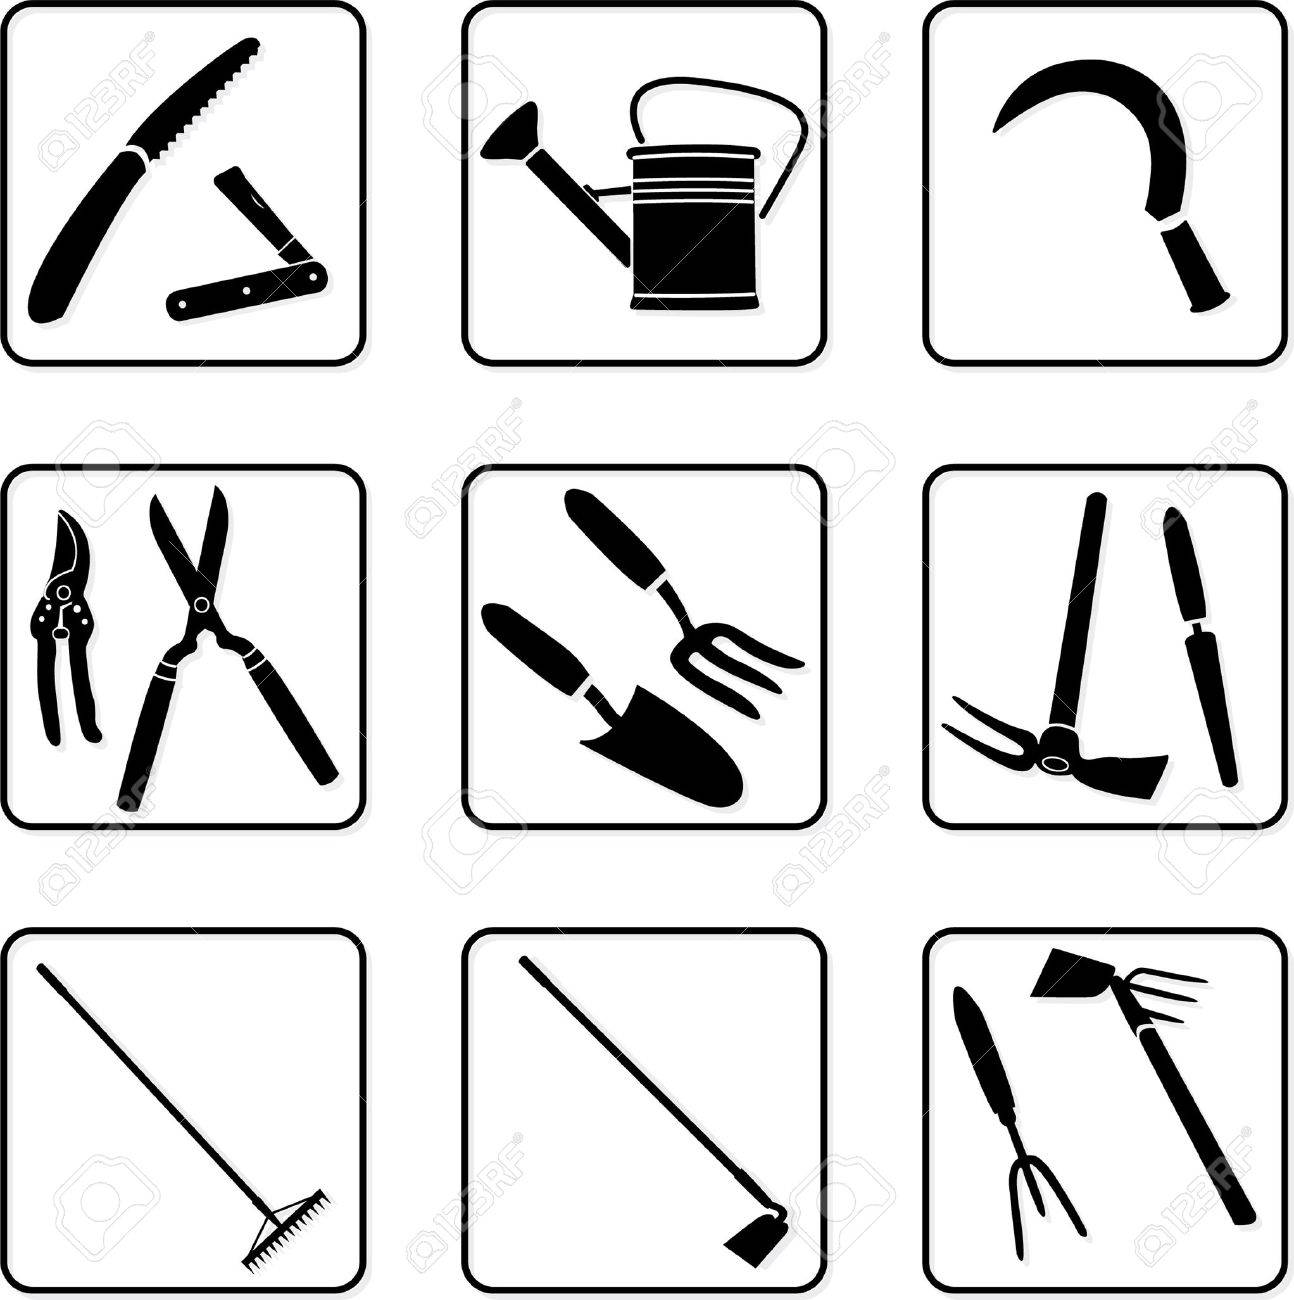 garden tools black and white silhouettes.